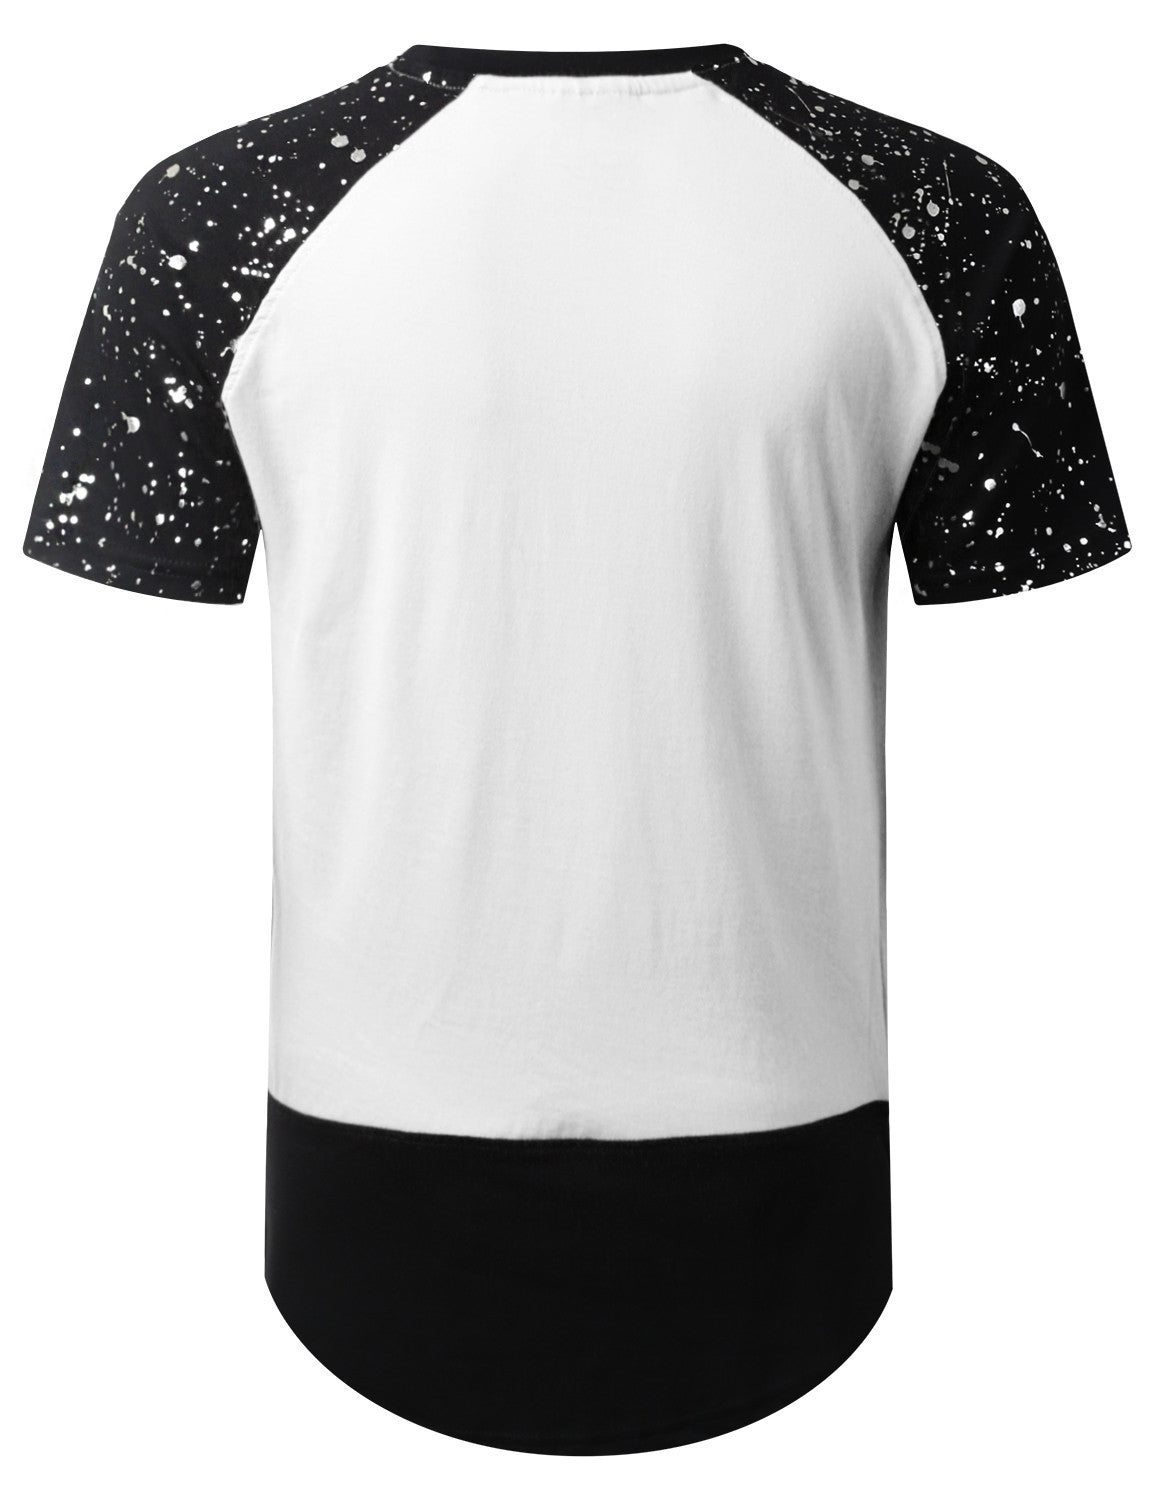 WHITE Splatter Ripped Raglan Longline T-shirt - URBANCREWS